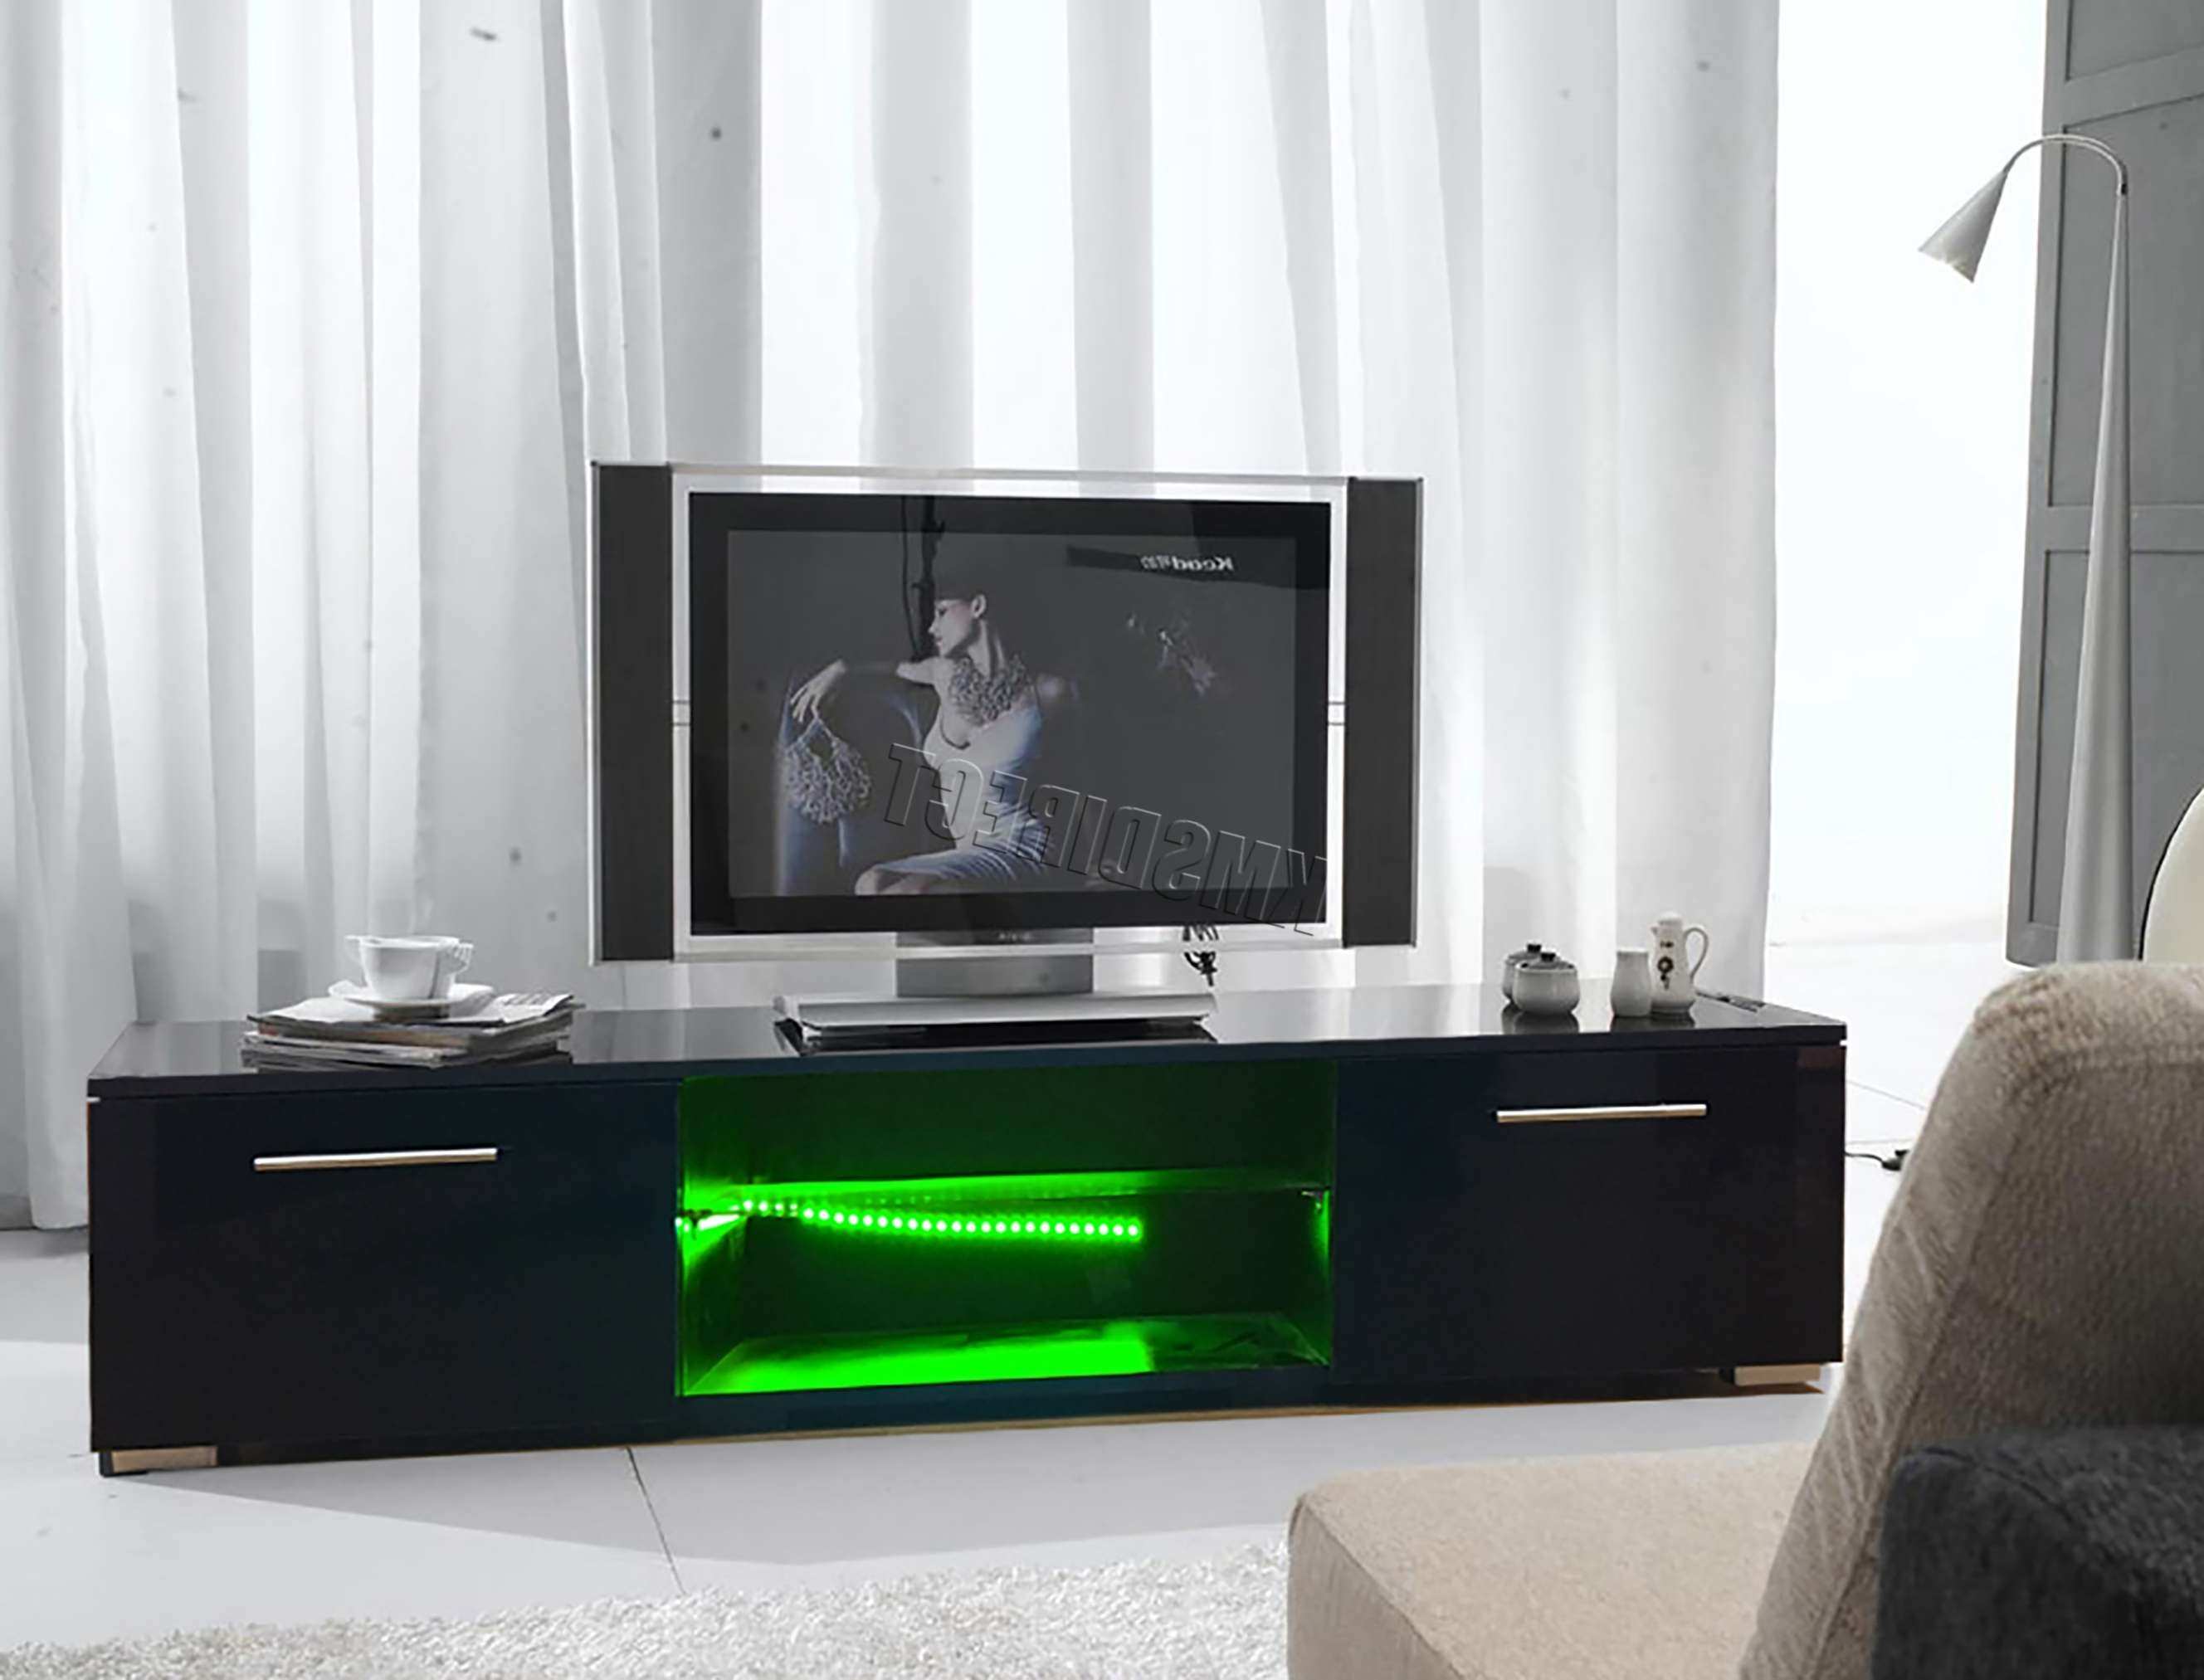 Foxhunter Modern High Gloss Matt Tv Cabinet Unit Stand Black Rgb Inside Led Tv Cabinets (View 3 of 20)